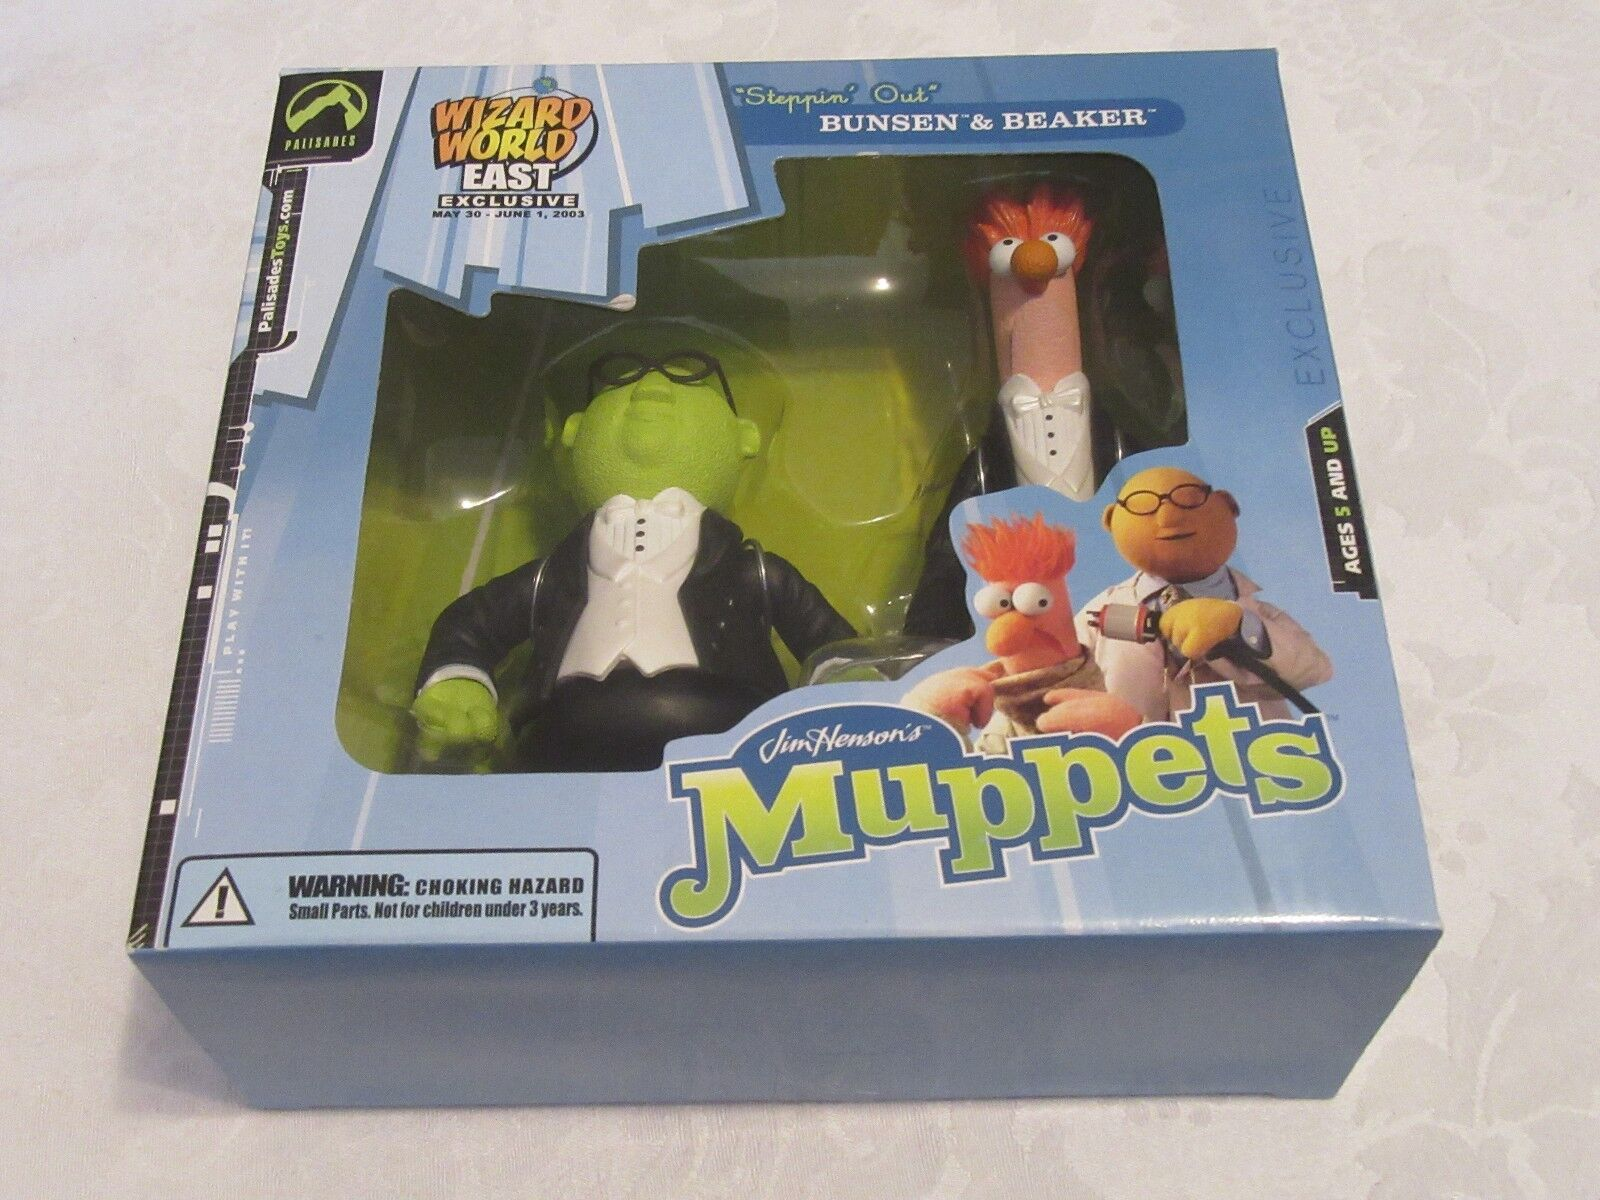 Palisades Wizard World East 2003 Exclusive Muppets Steppin Out Bunsen & Beaker